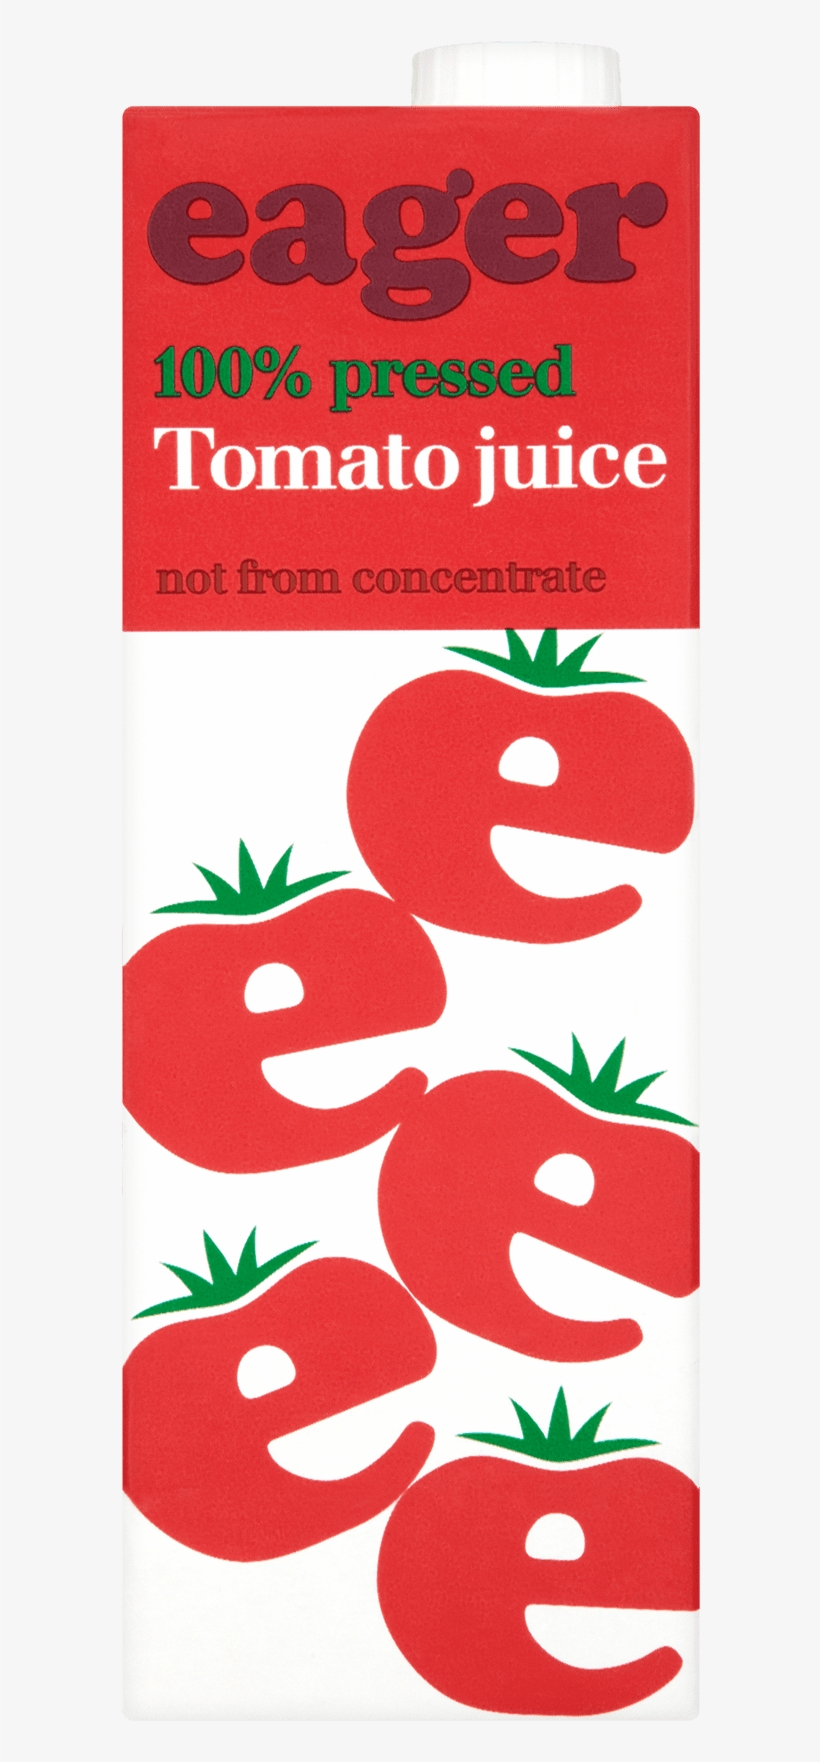 Tomato Juice - Eager Tomato Juice, transparent png #7785067